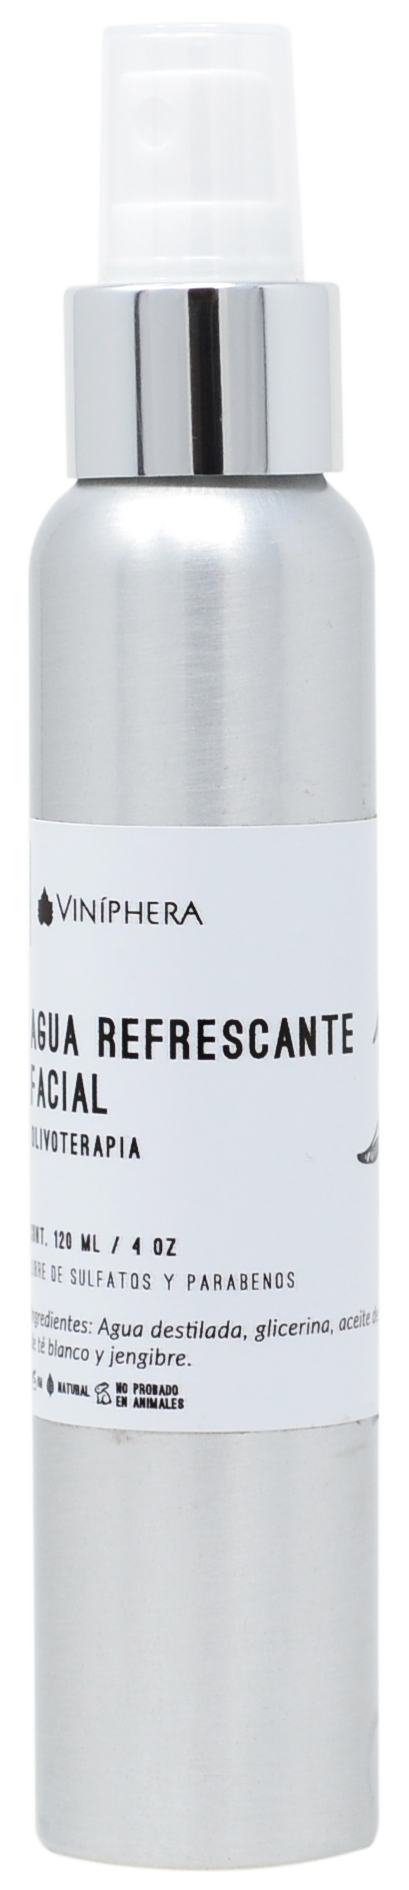 Agua Refrescante Facial De Olivo Terapia 120ml/4 oz